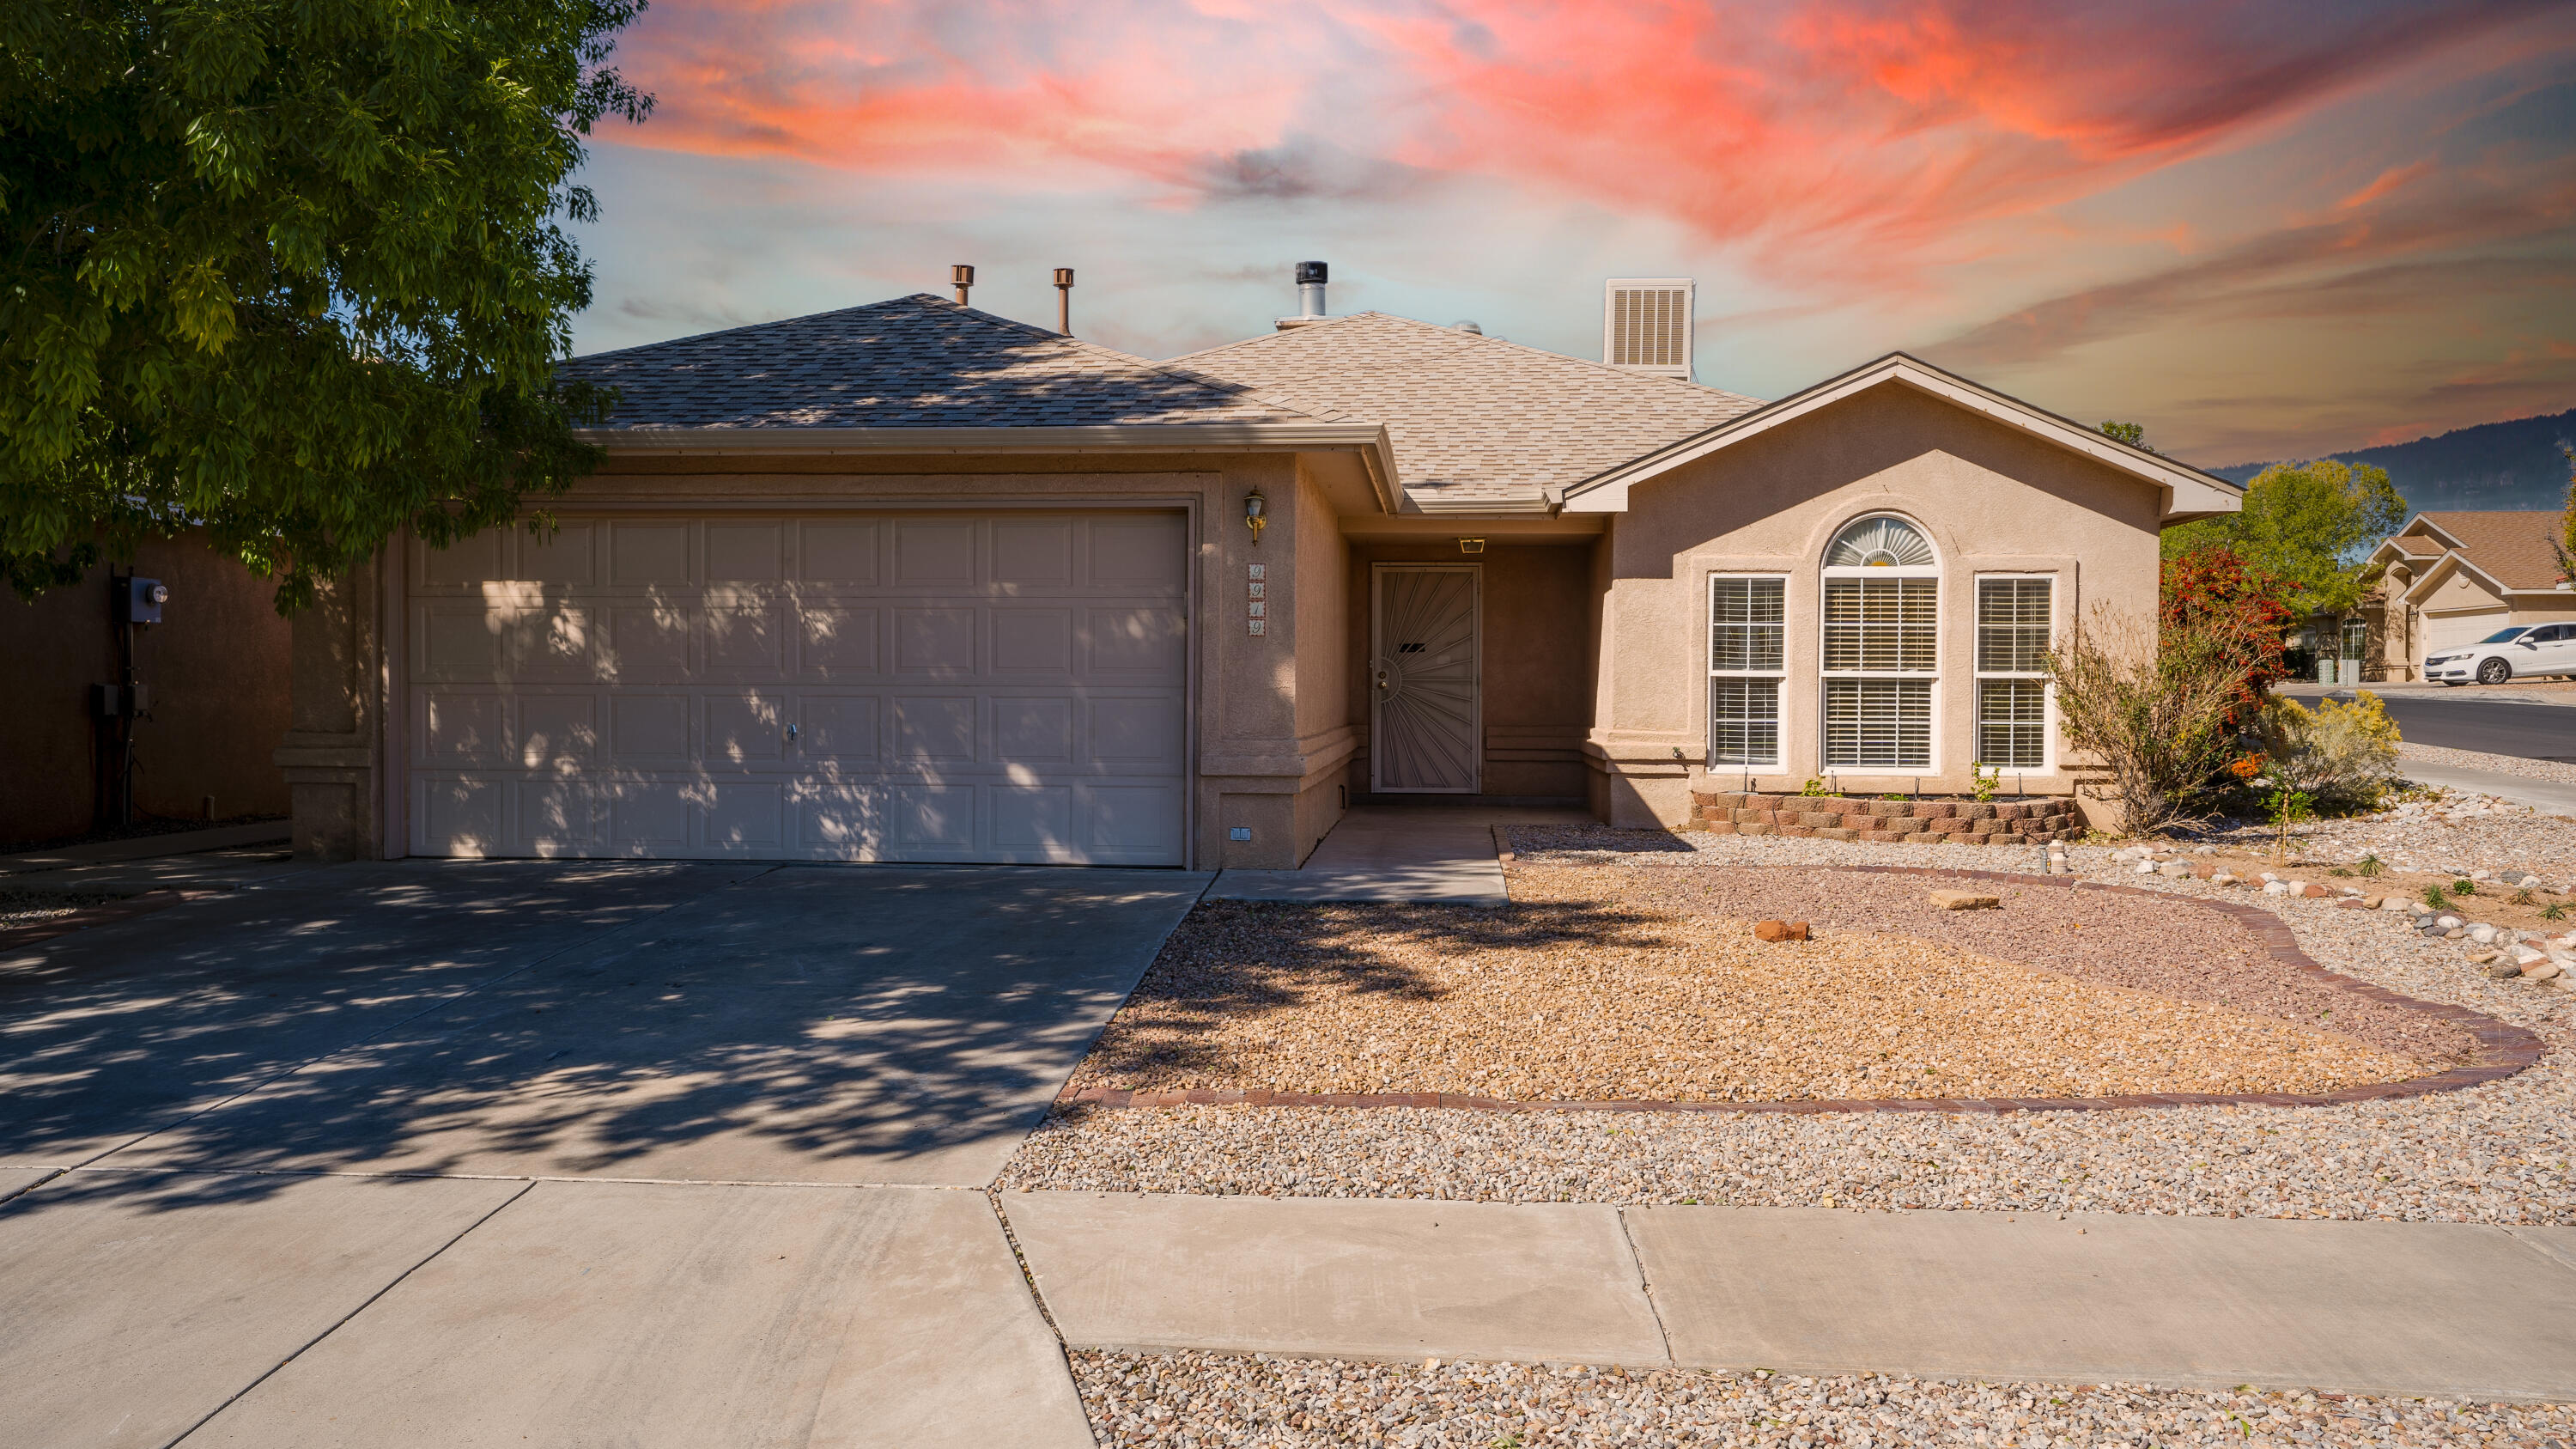 This is your opportunity to live in this great Ventana Ranch location close to parks. I love this single-story home on a corner lot with covered Patio, a shed and a fruit tree. Split Floorplan, living room has two-way fireplace open to kitchen and dining, High Ceilings, plant shelves, and blinds. Primary bedroom has large shower, exterior doors, walk in closet. Roof and evaporative cooler are newer. Needs interior paint, have quote for $2500.00 for one color walls and ceiling similar to home and white for the trim/base boards.